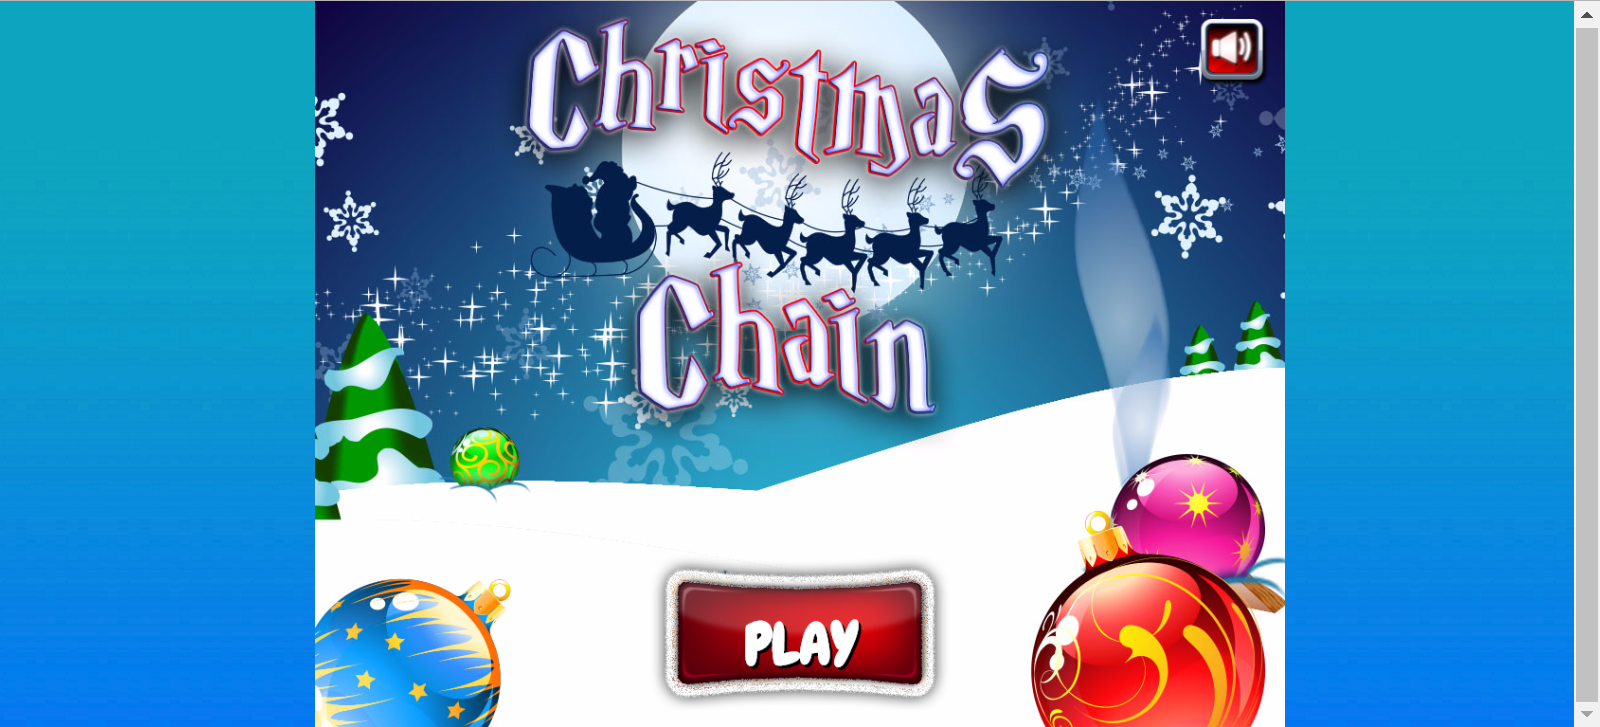 technology rocks. seriously.: Interactive Christmas Games 2016